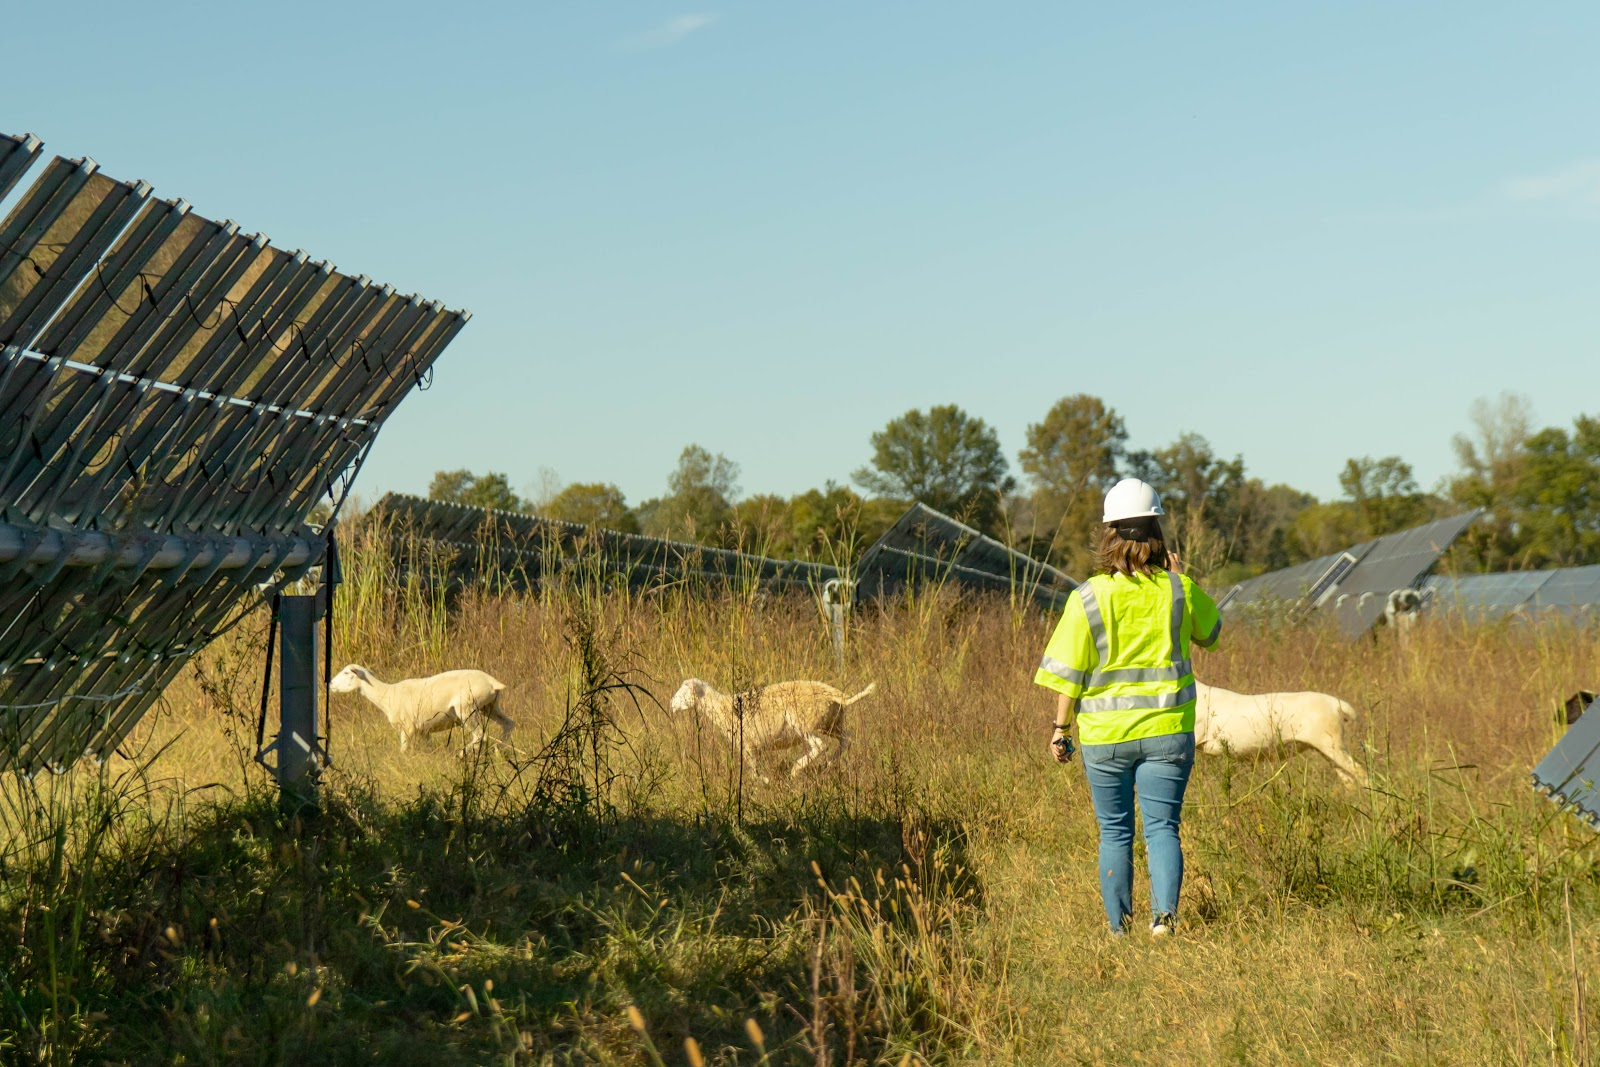 Clearloop seeing solar and regenerative energy in action